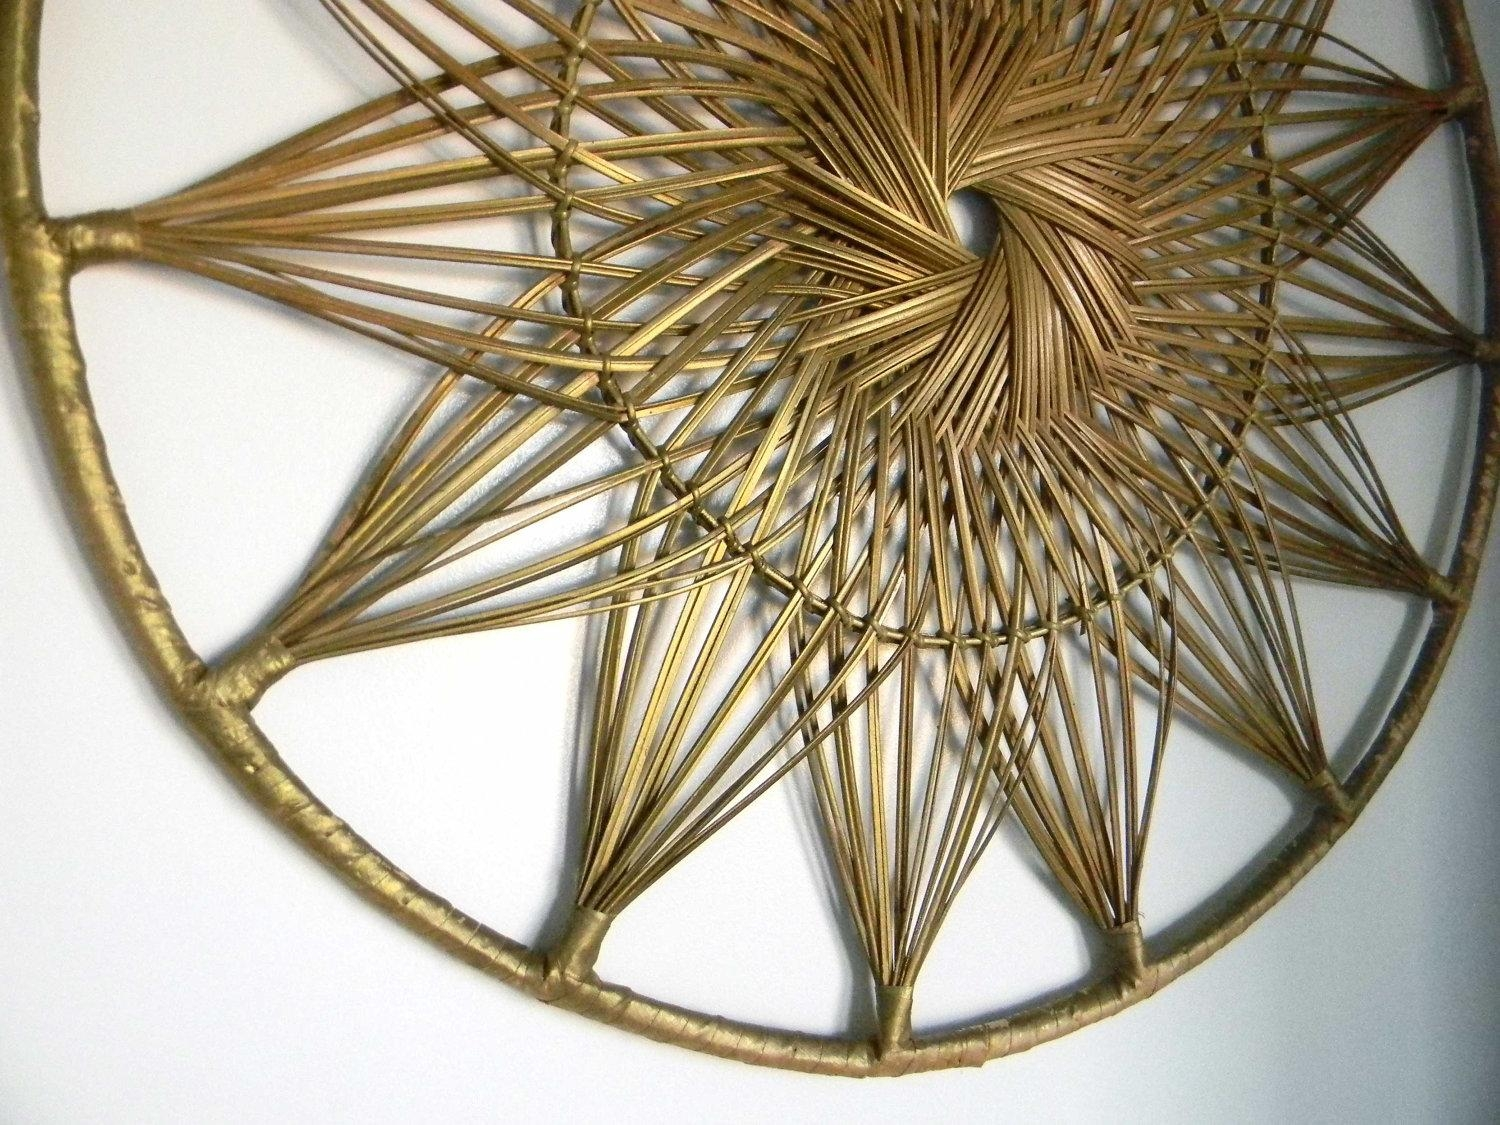 Wall Decor: Wicker Wall Decor Images. Trendy Wall (Image 13 of 20)